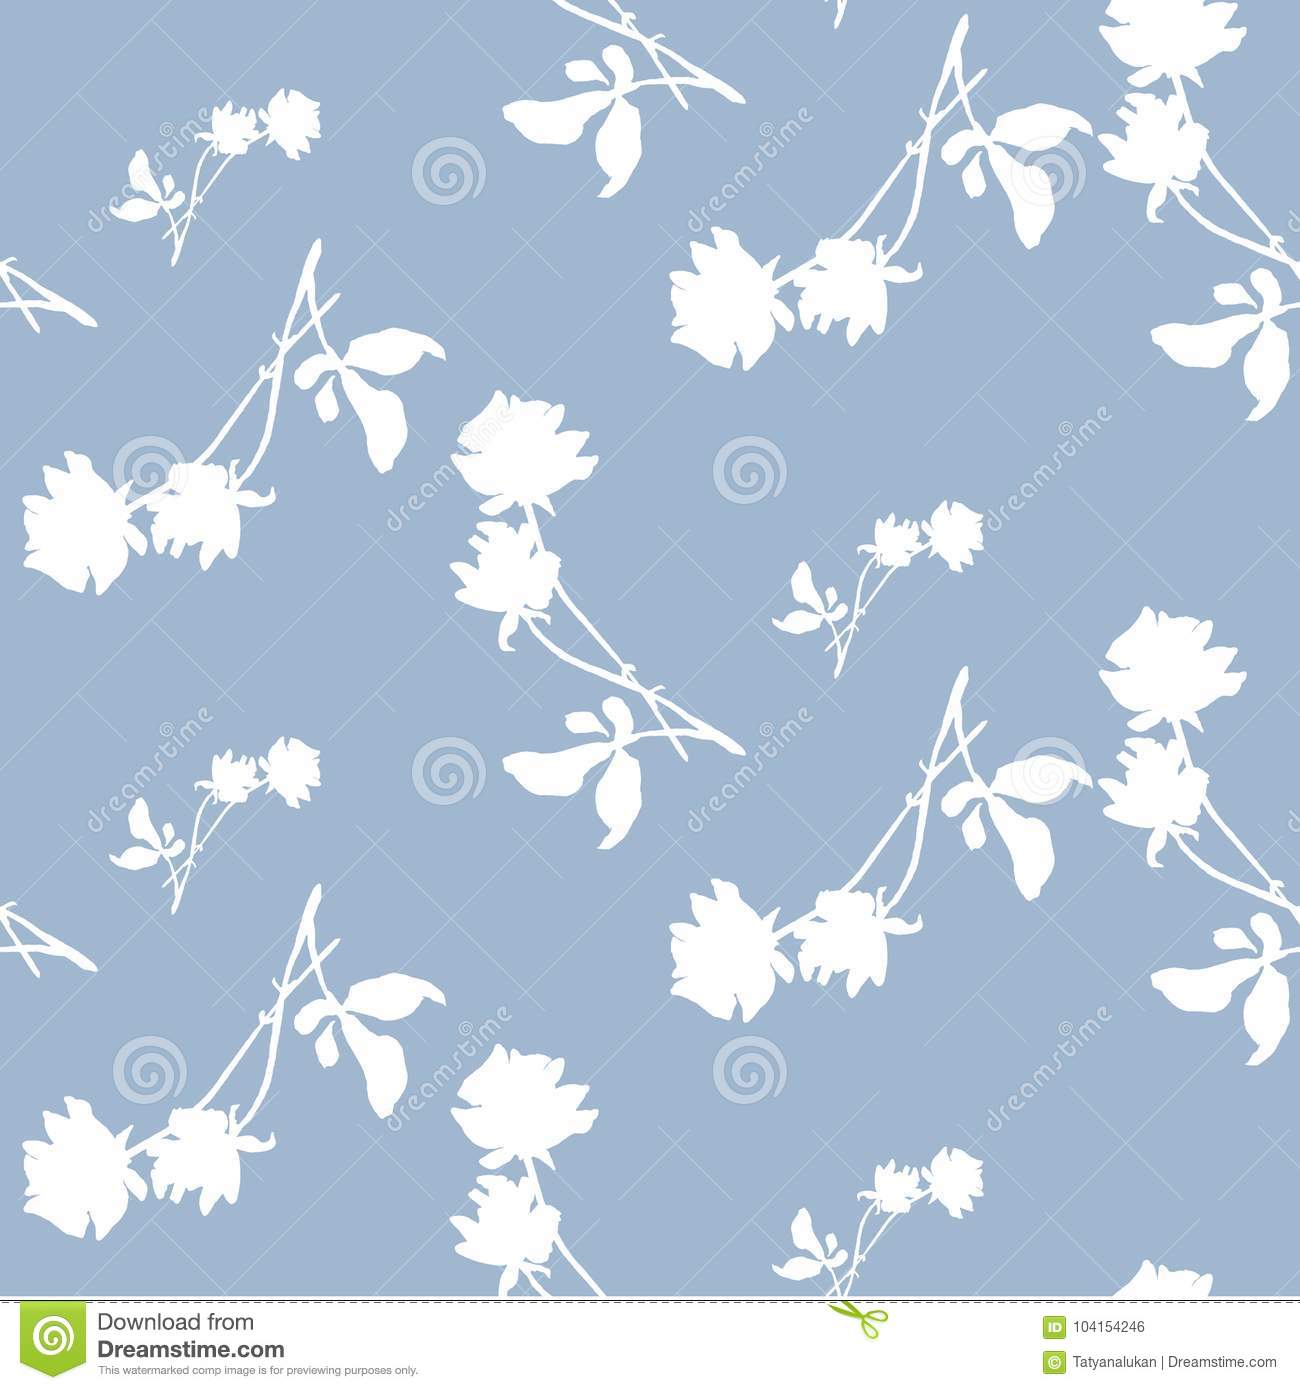 Watercolor Seamless Pattern With Silhouettes Of White Roses And Leaves On Light Blue Background Chinese